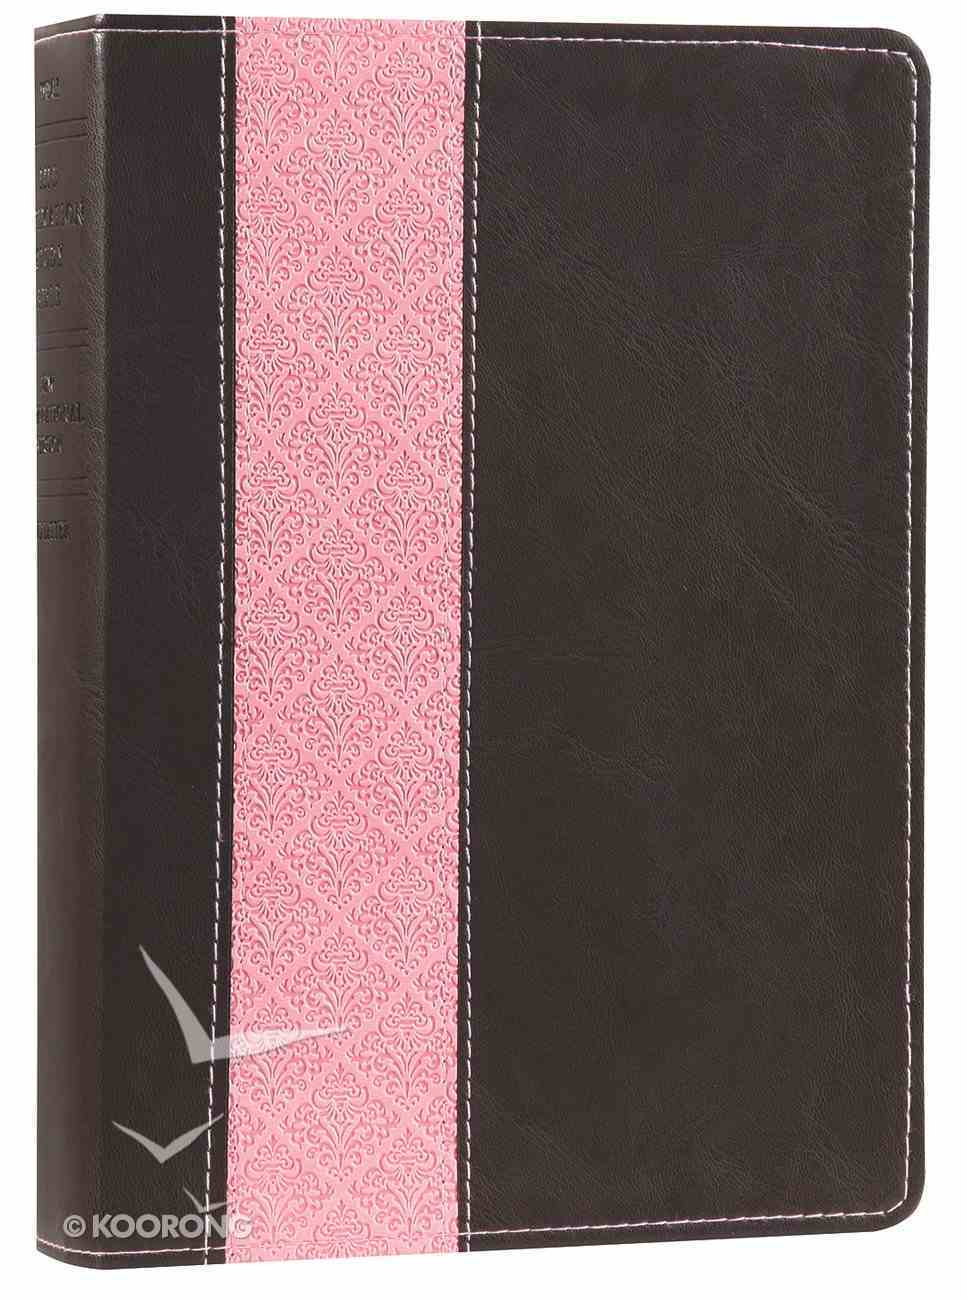 NIV Life Application Study Bible Dark Brown/Pink (Red Letter Edition) Imitation Leather